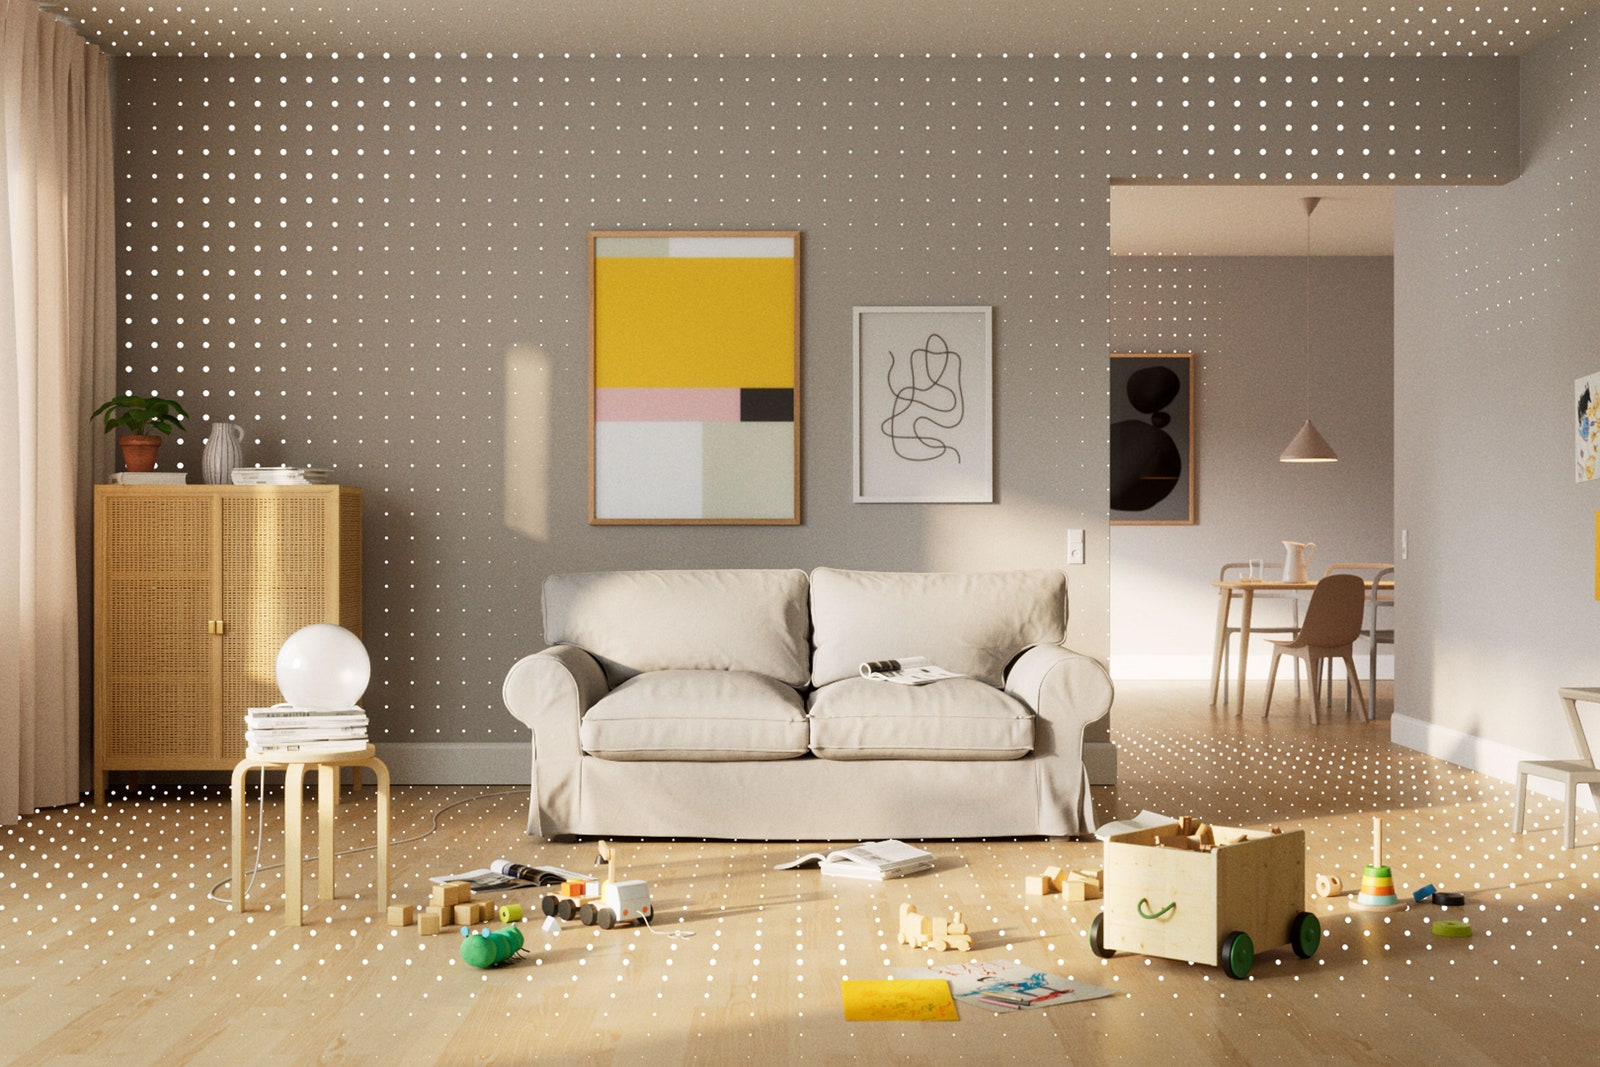 wired-ikea-space10